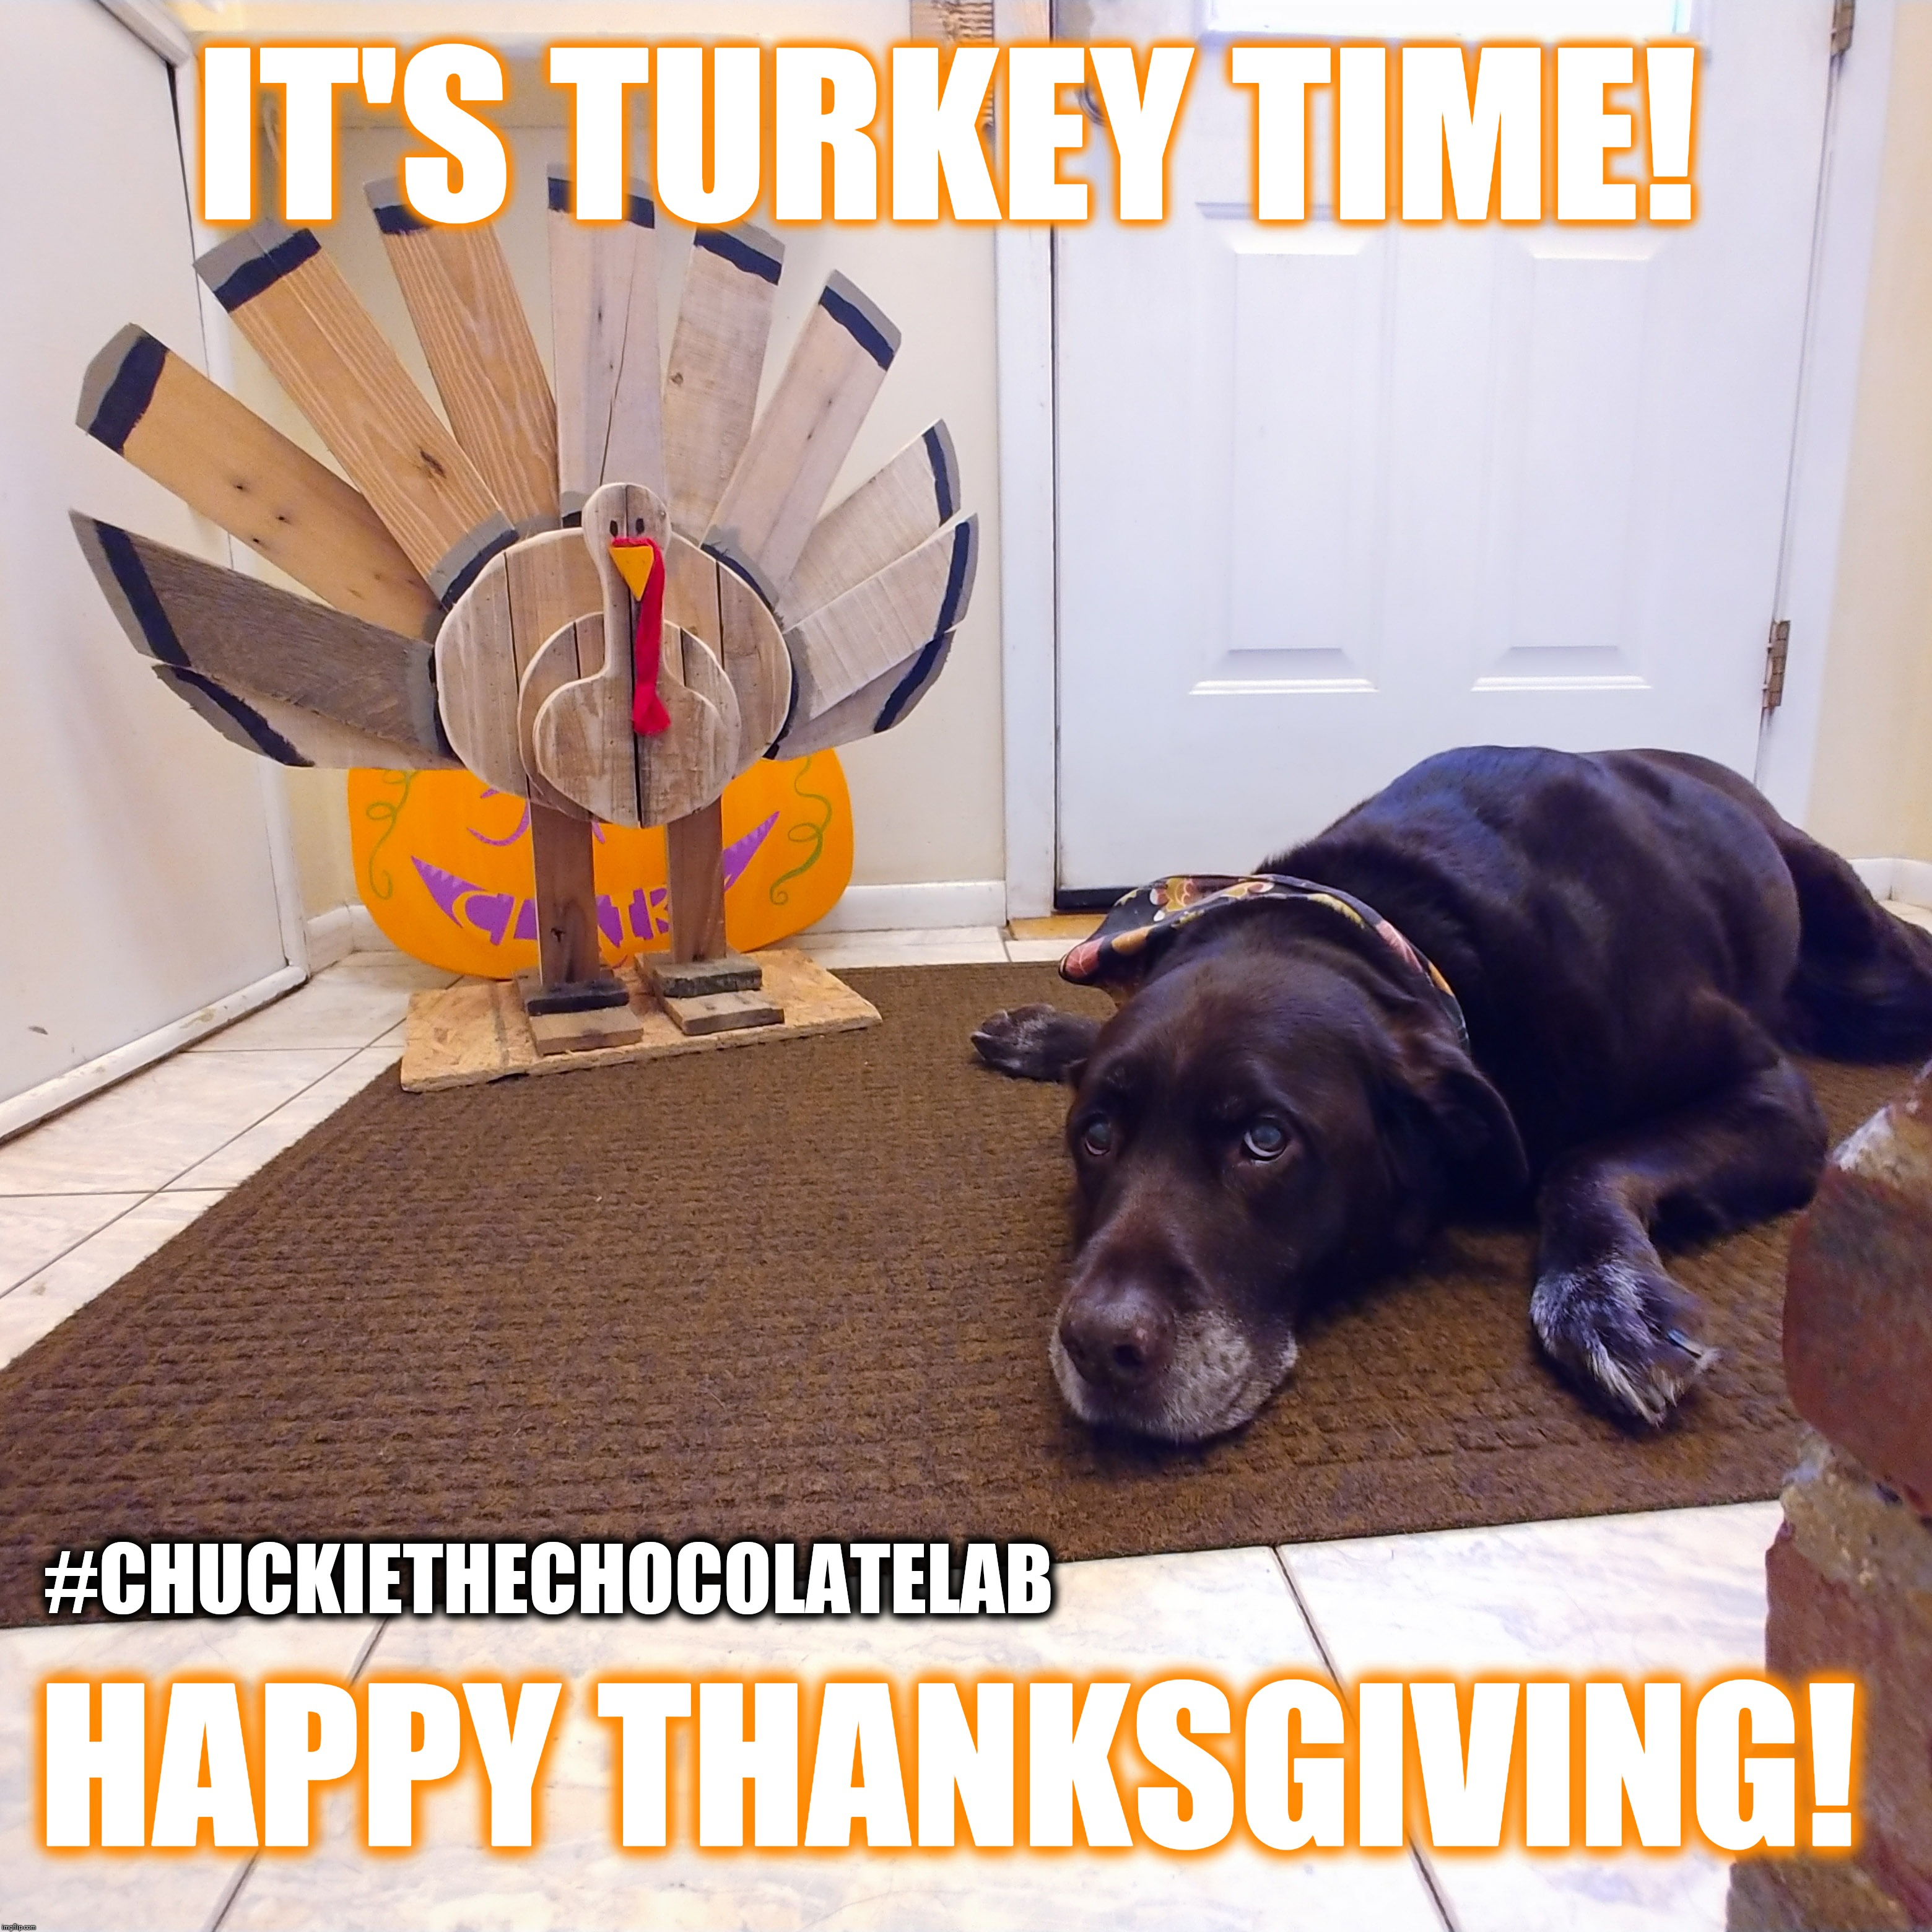 It's Turkey Time! | IT'S TURKEY TIME! HAPPY THANKSGIVING! #CHUCKIETHECHOCOLATELAB | image tagged in chuckie the chocolate lab,dogs,memes,funny,thanksgiving,turkey | made w/ Imgflip meme maker